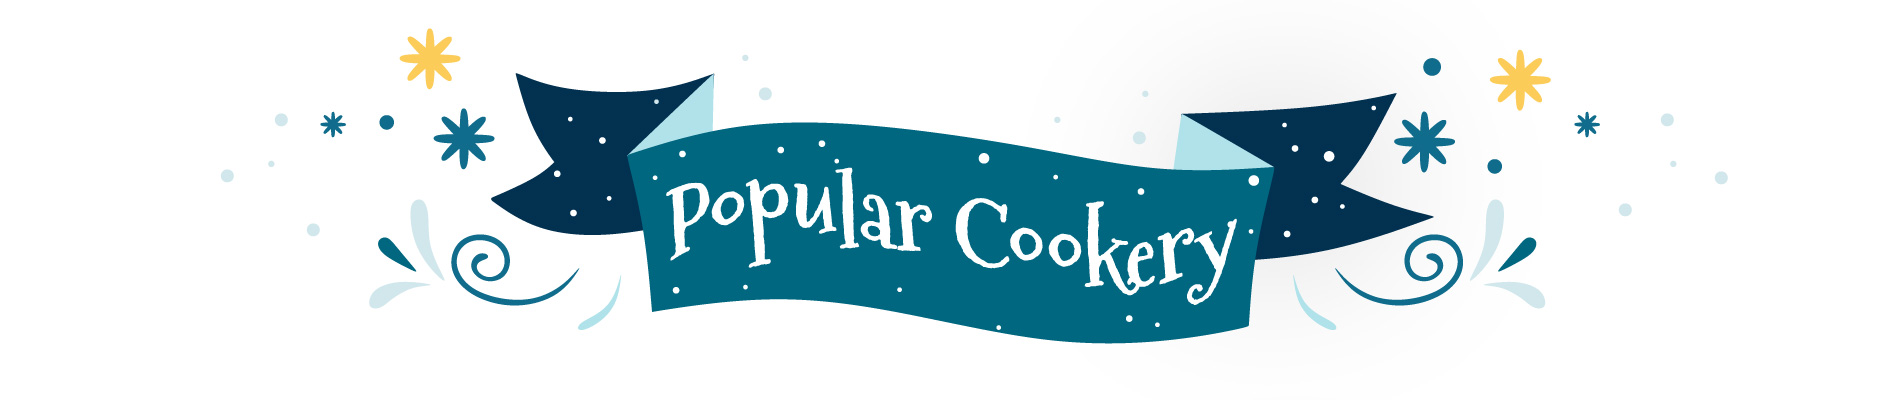 Popular Cookery for Christmas